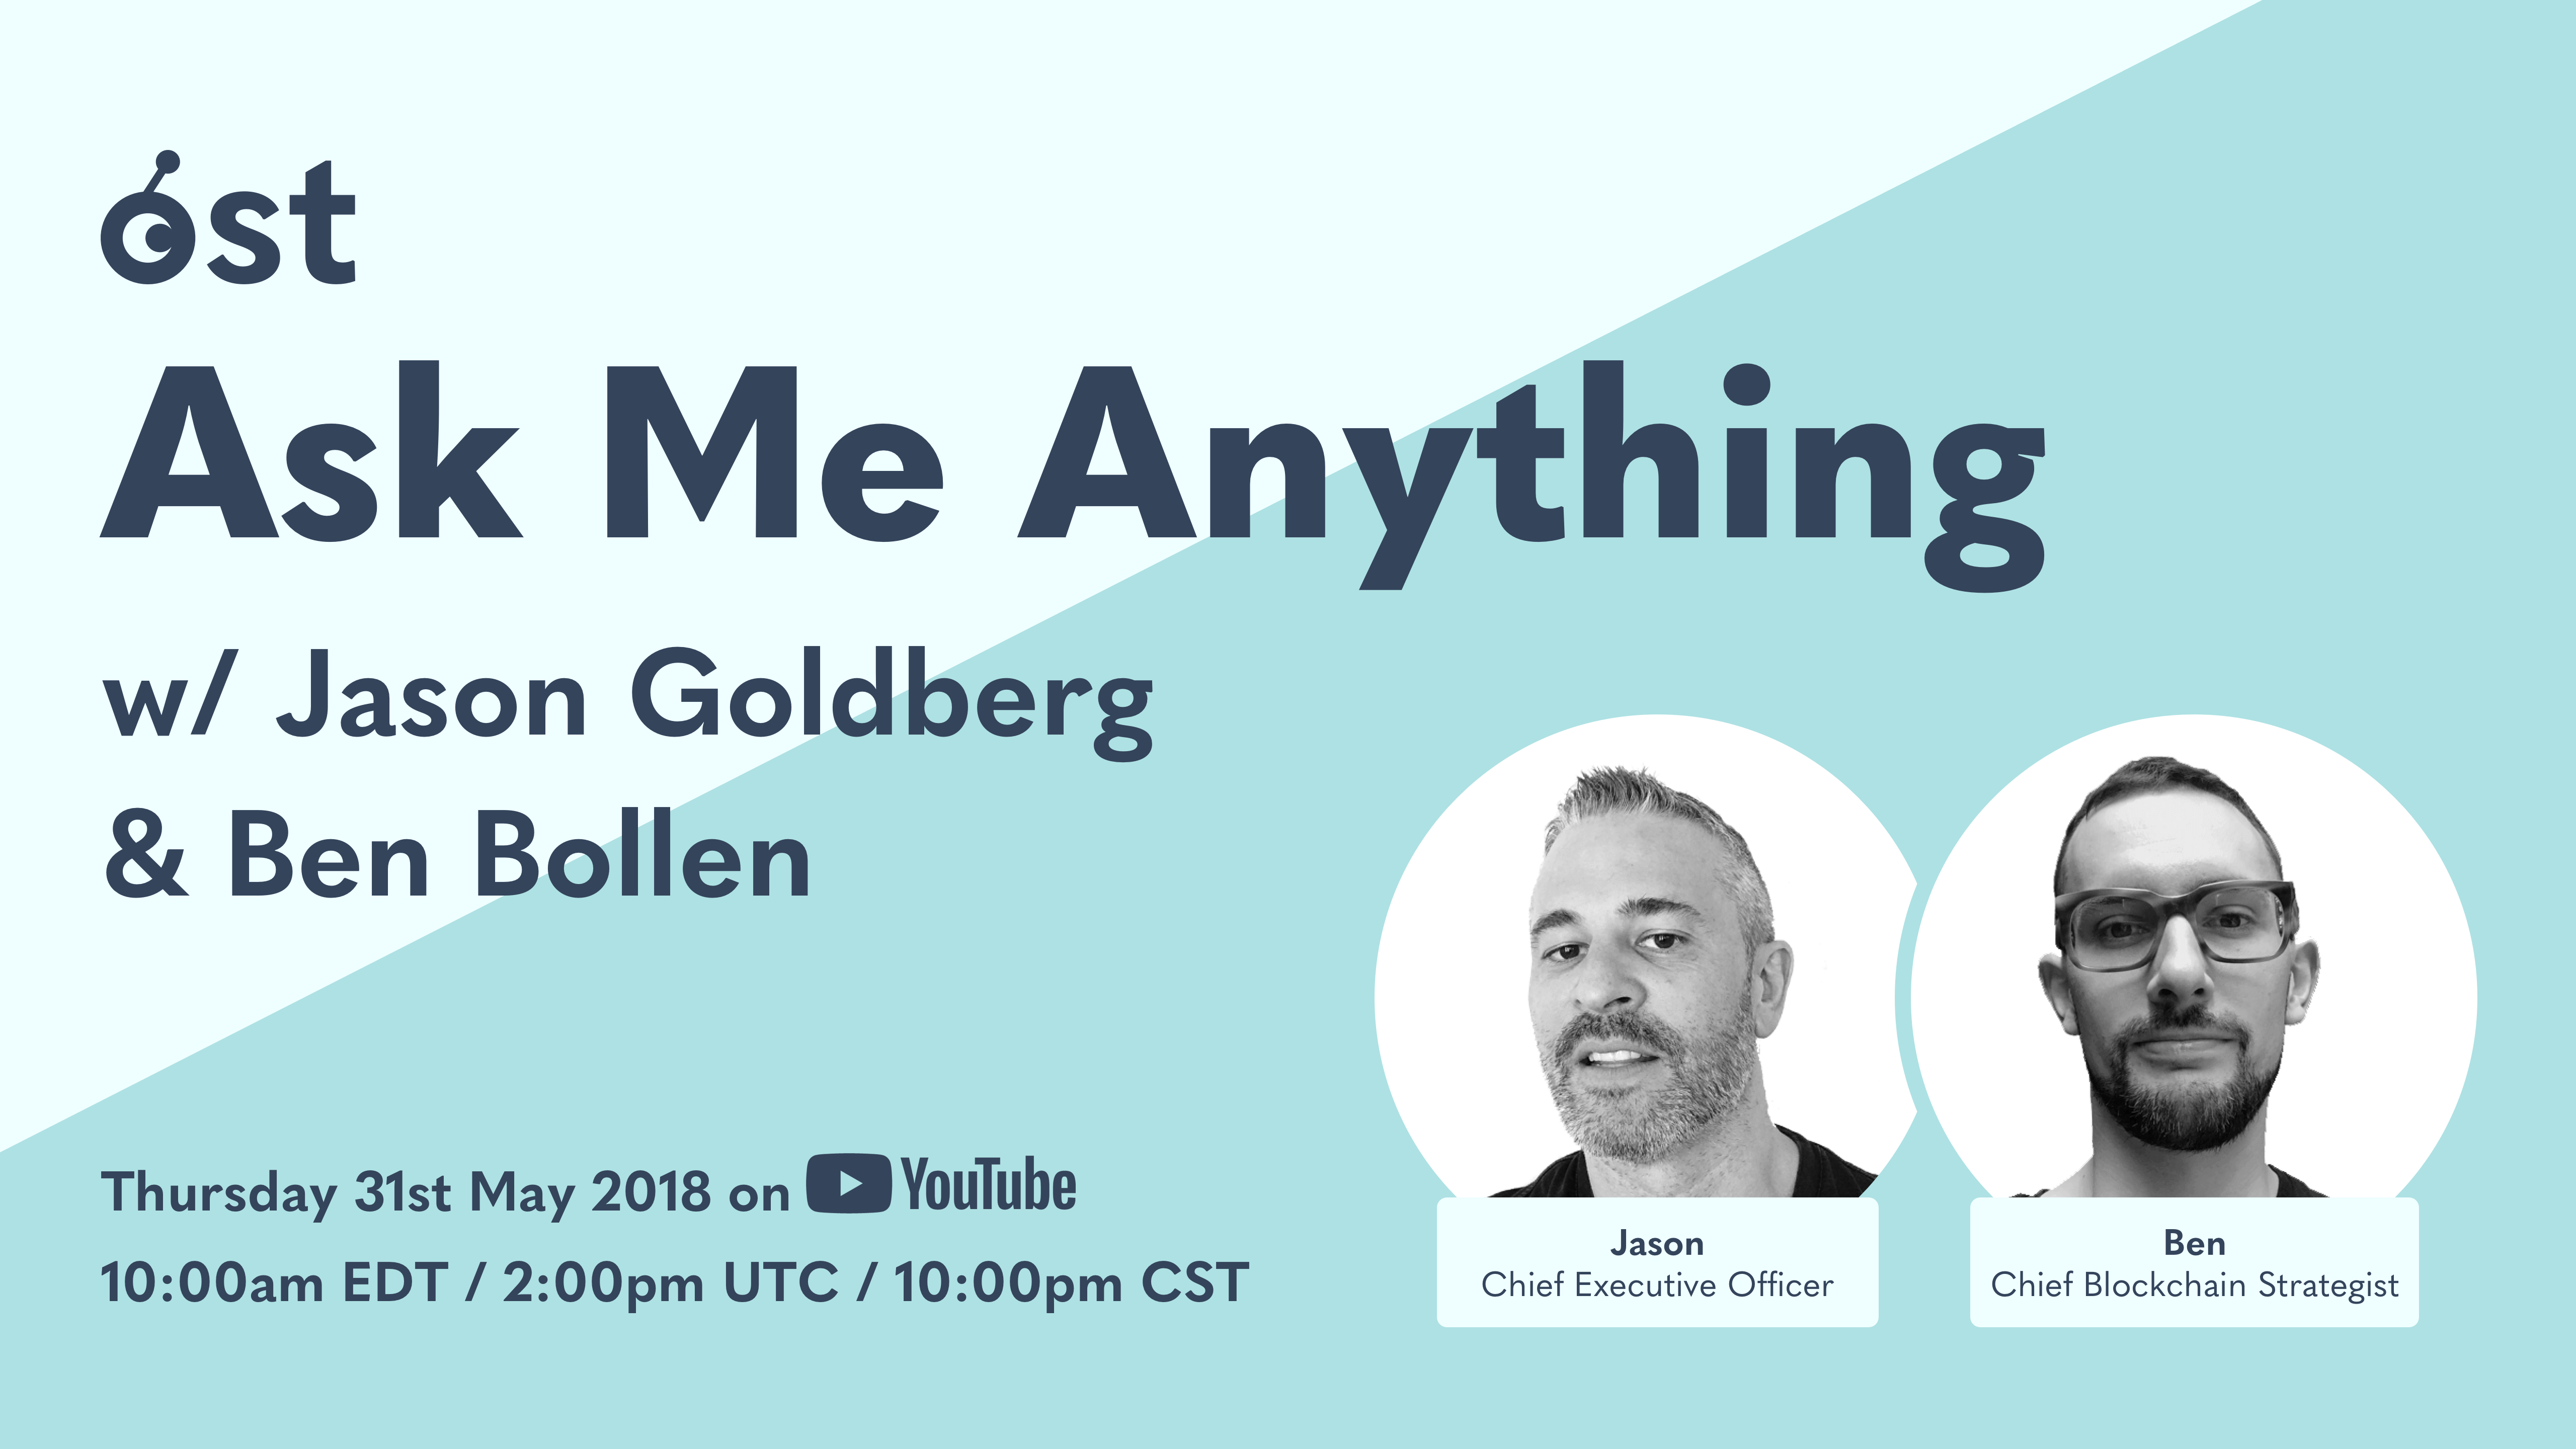 Save the Date: AMA with Jason Goldberg and Benjamin Bollen on 31 May 2018!